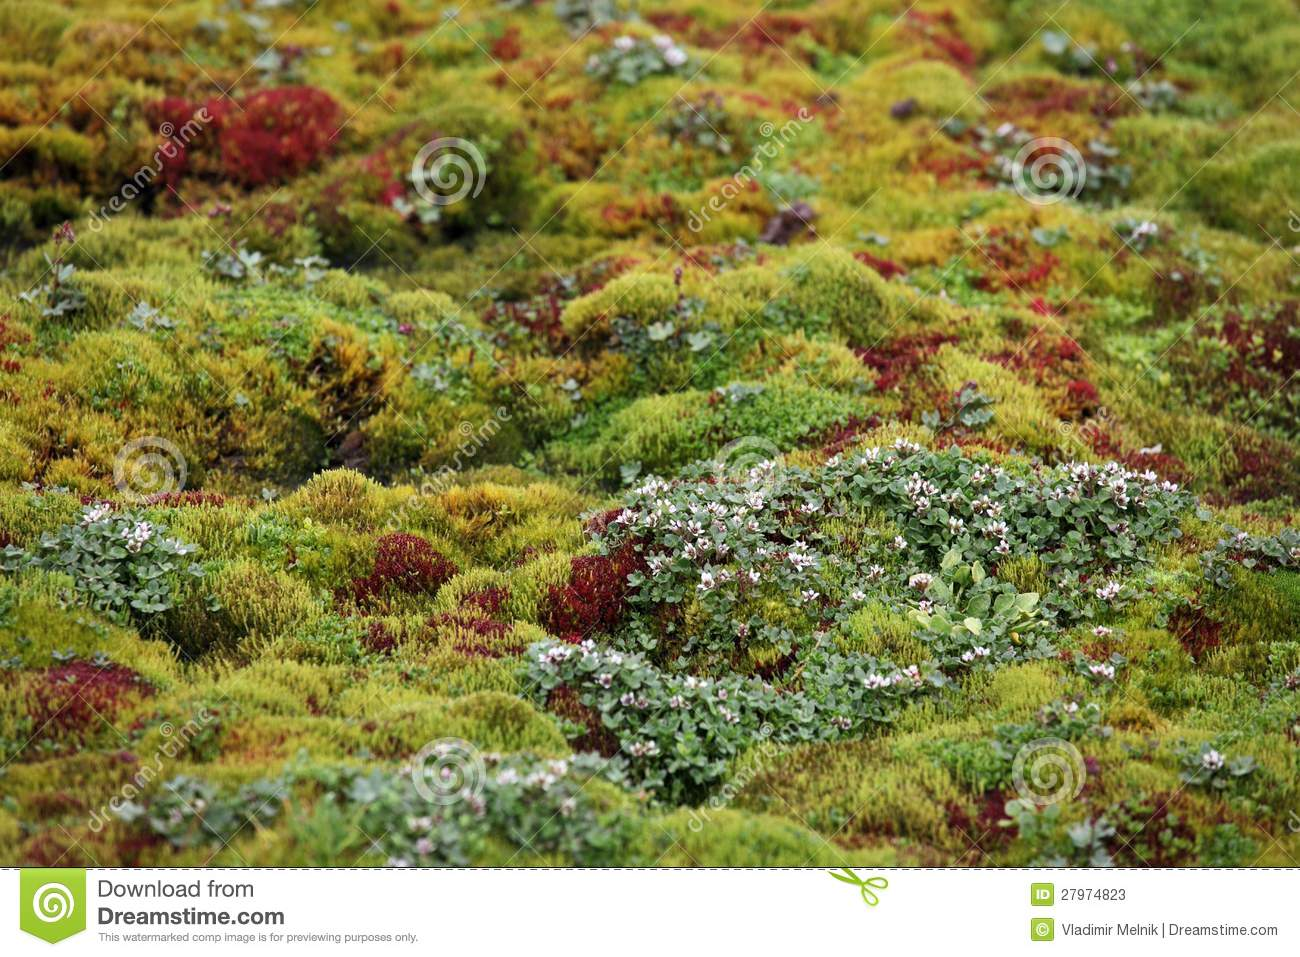 What are adaptations of caribou moss? - mccnsulting.web ...